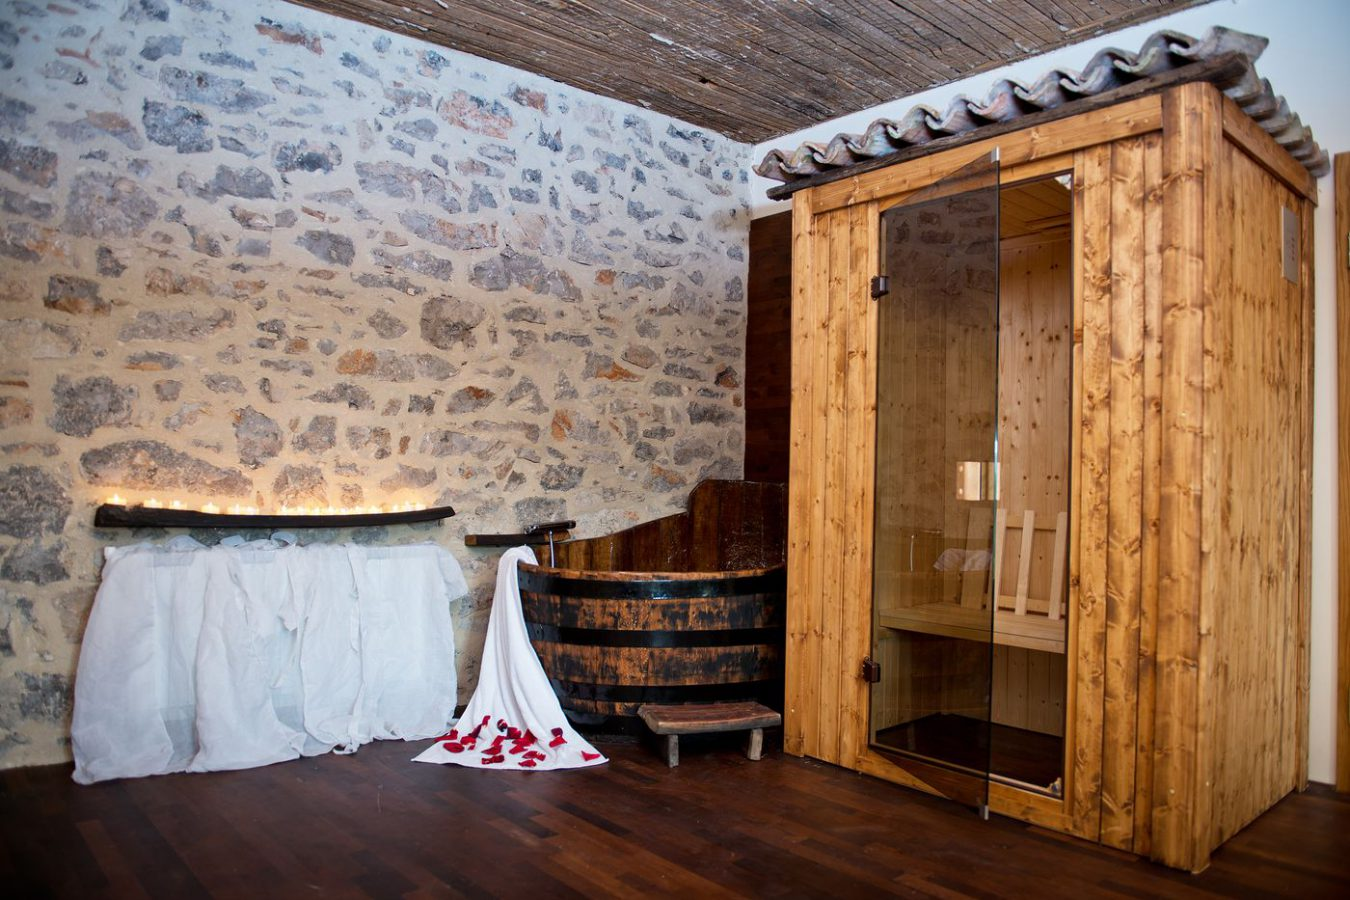 Royal Suite Spa Sauna Asa Residence Private Villa Kras Slovenia